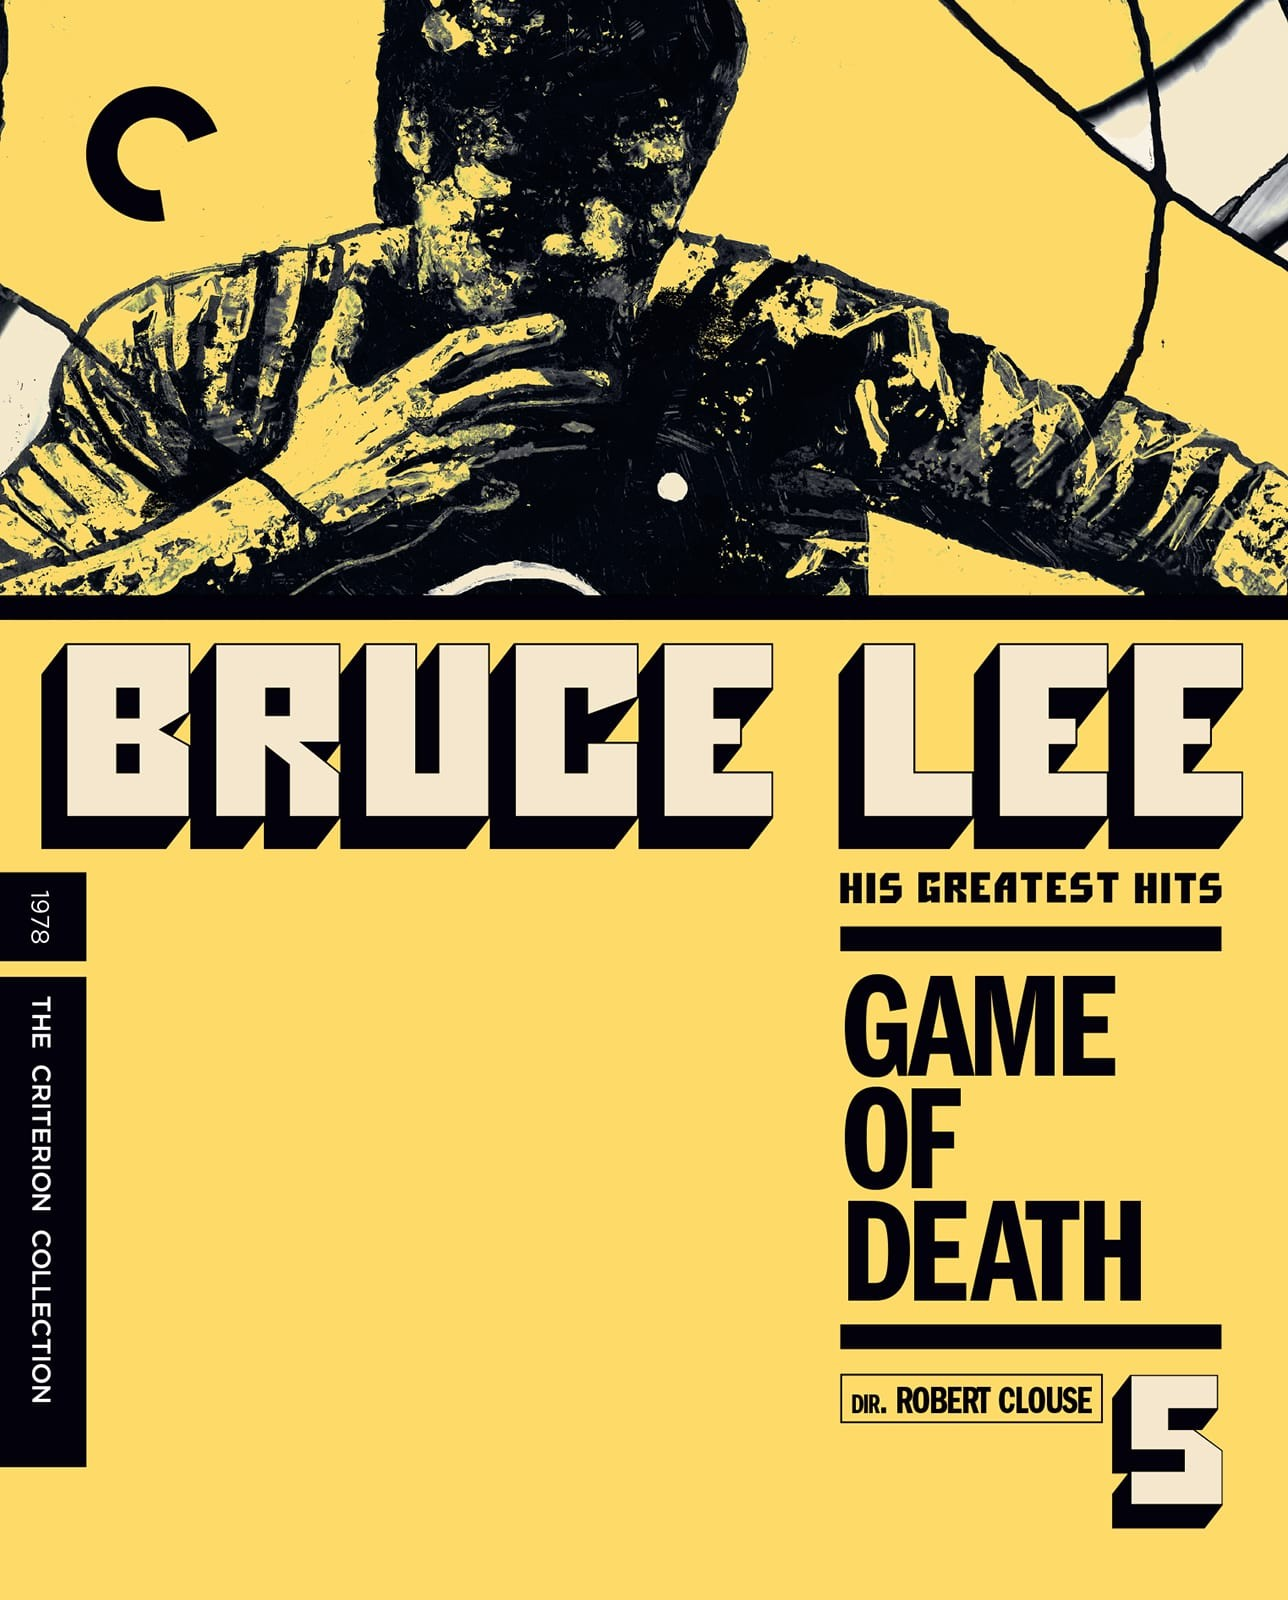 Game of Death (1978) | The Criterion Collection